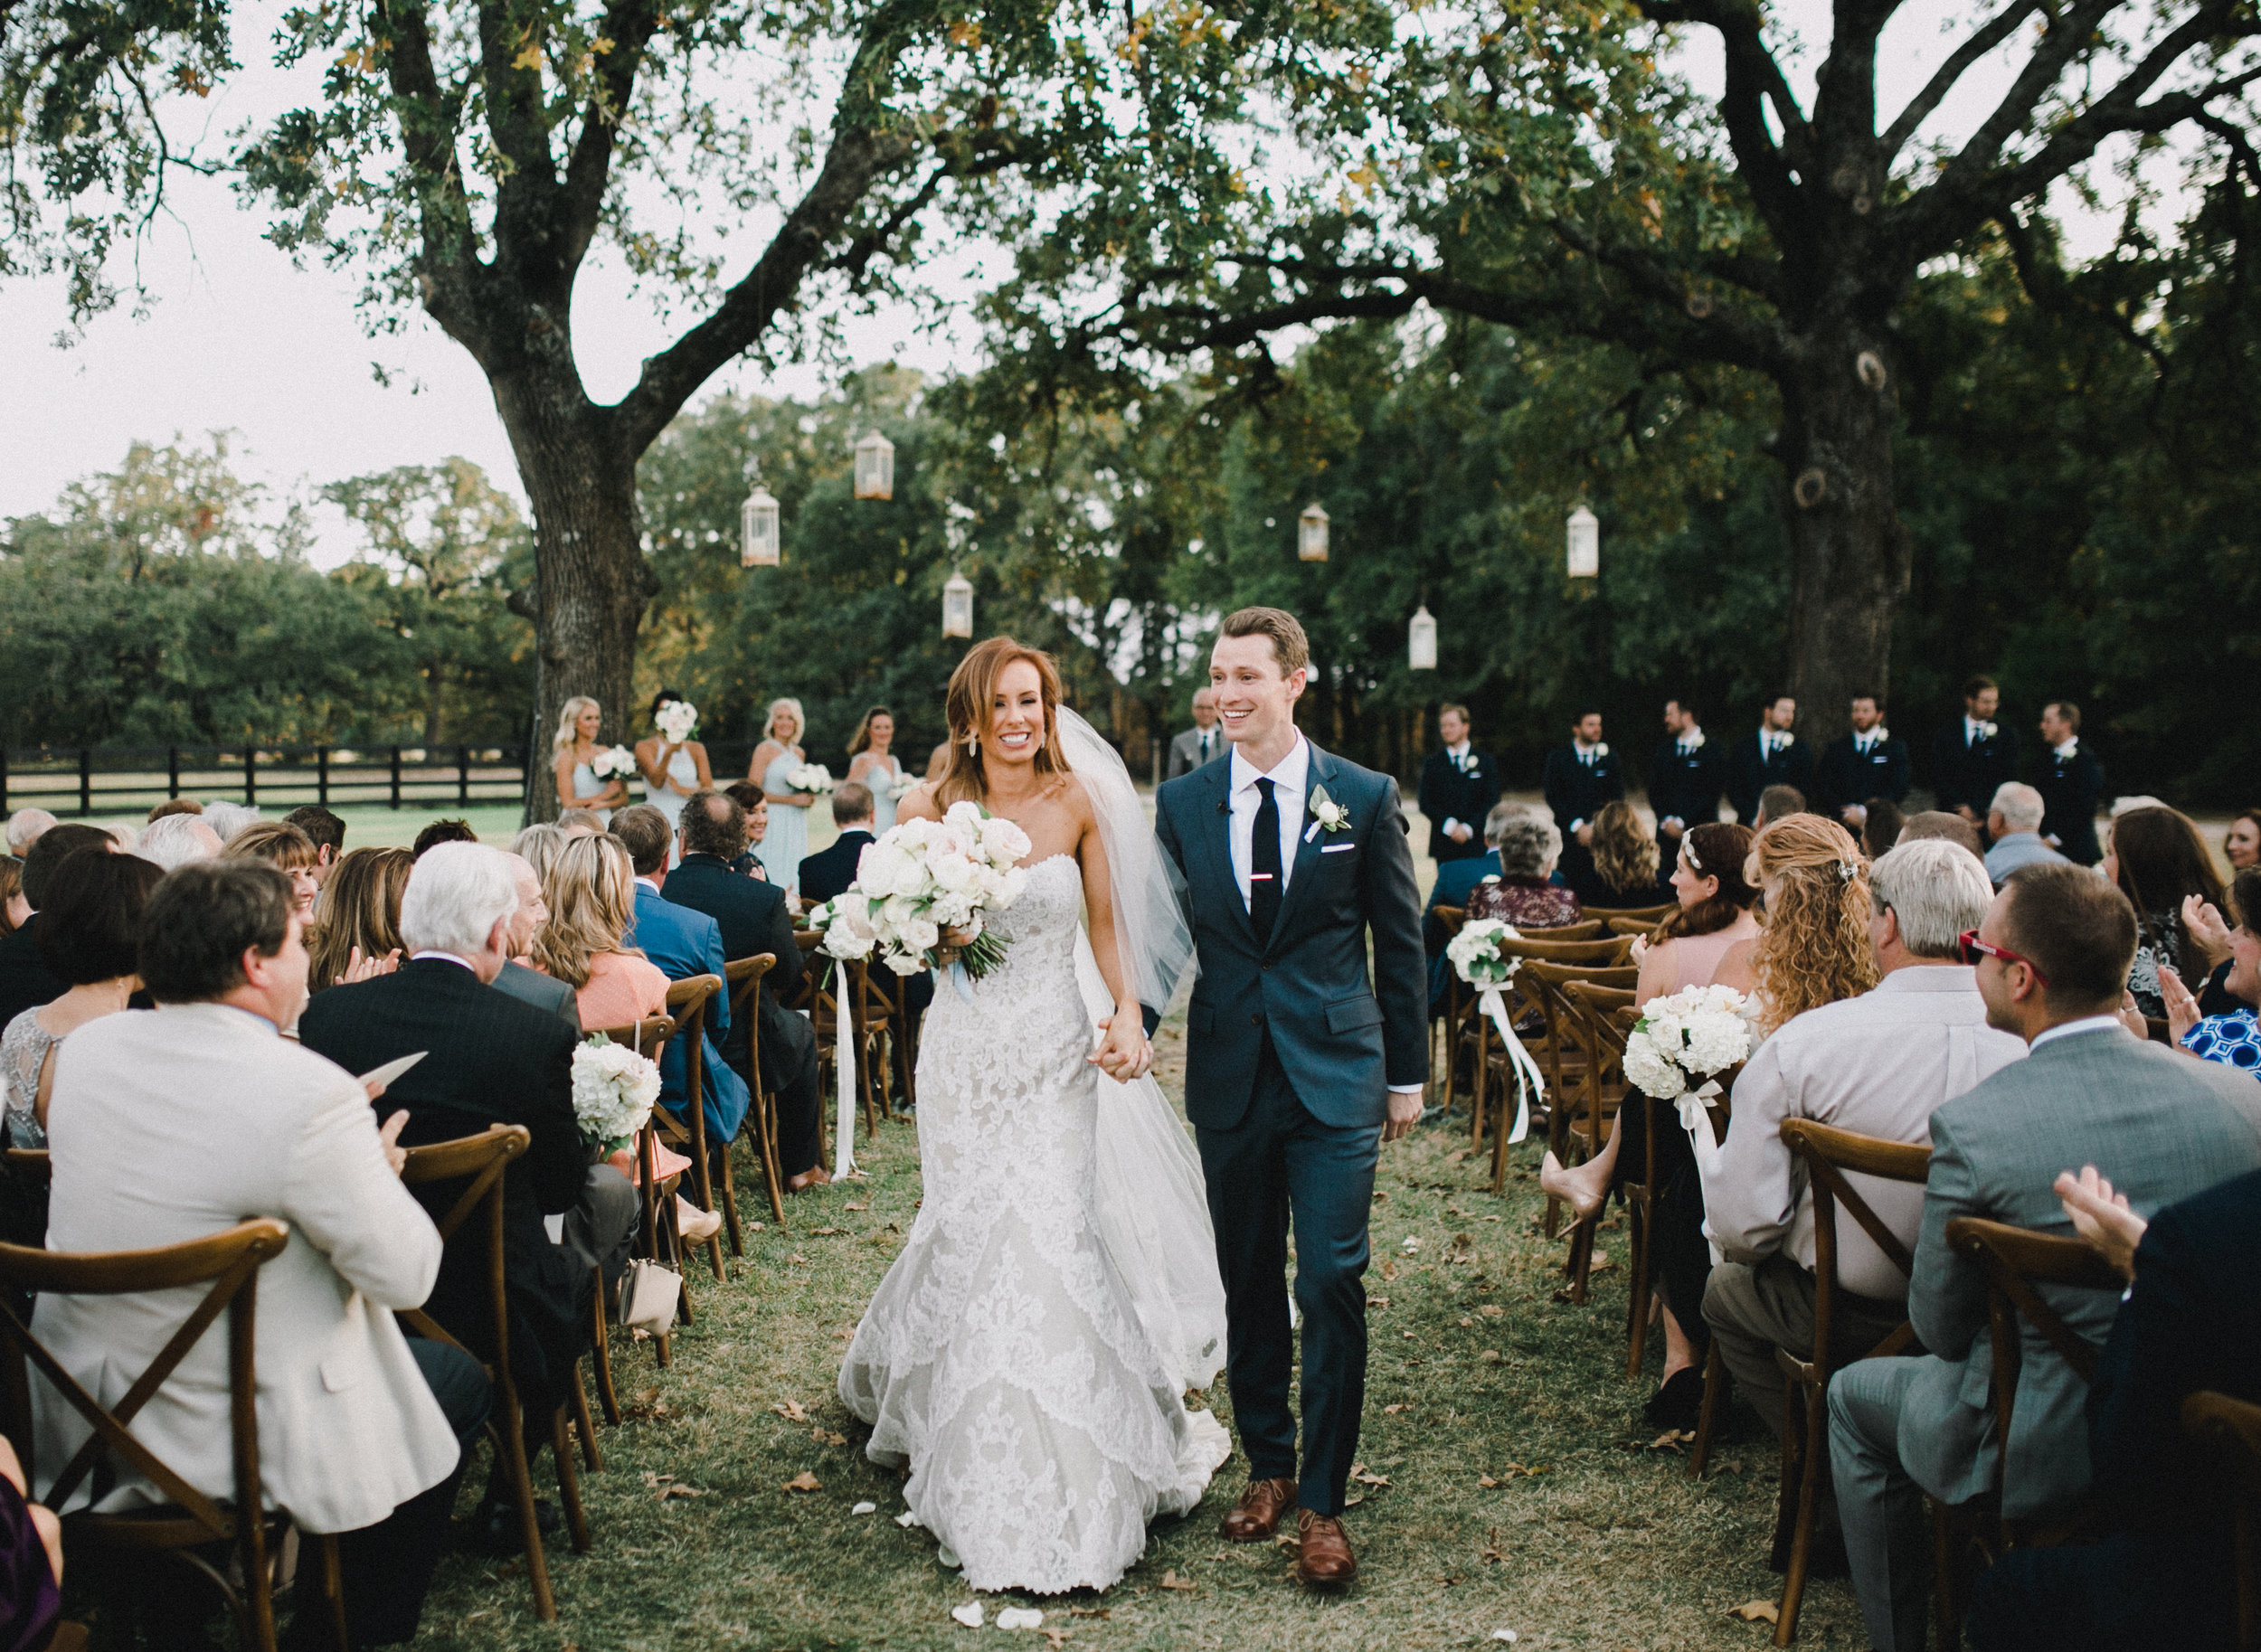 Rachel & Cord = Southern Wedding at the White Sparrow Barn   Payge Stevens photography